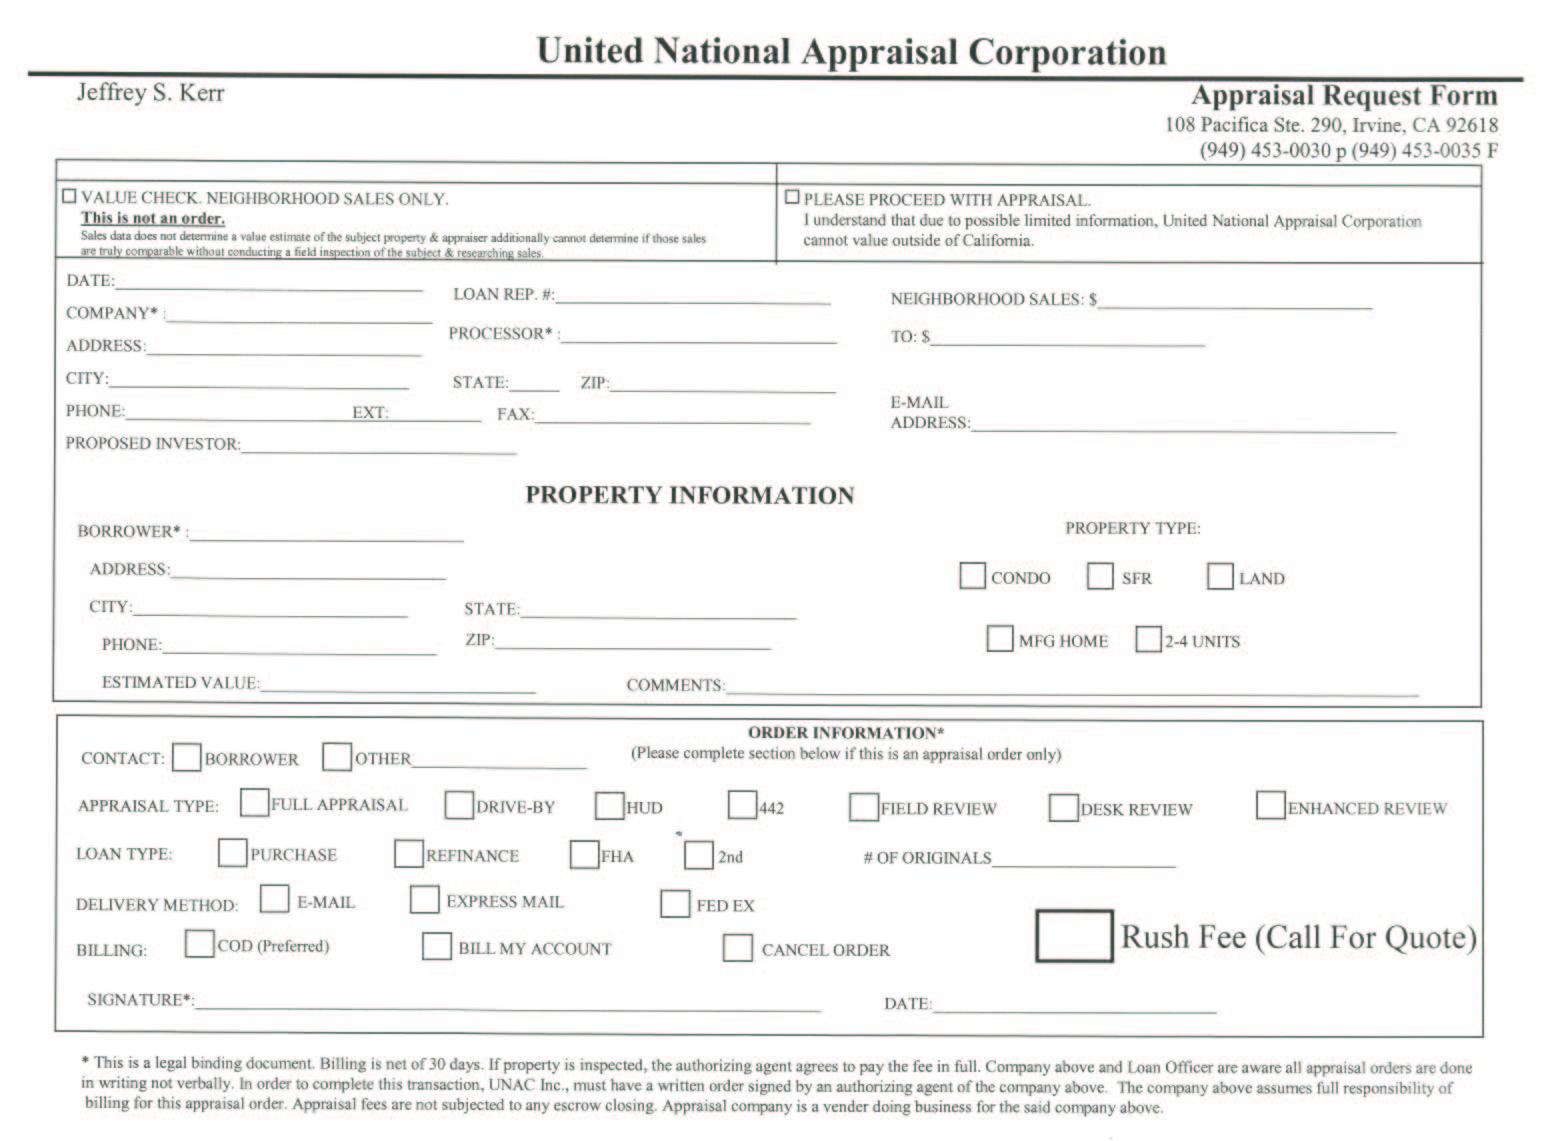 appraisal review form – Appraisal Review Form